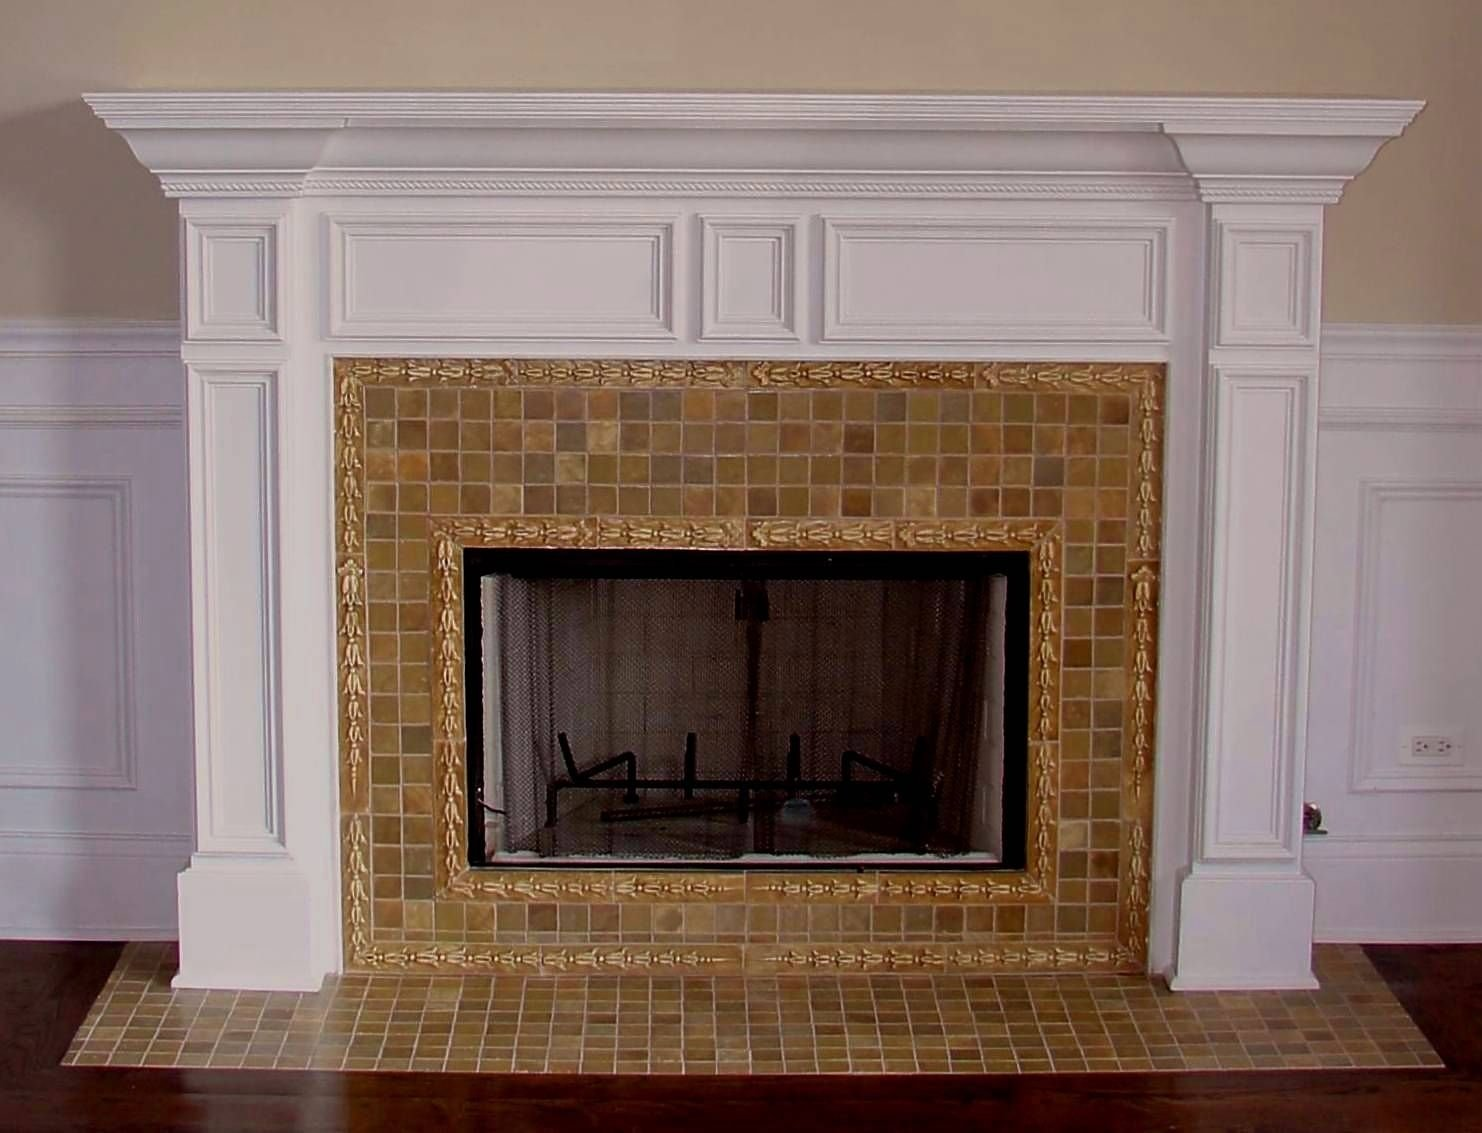 10 Unique Fireplace Design Ideas With Tile 25 most popular fireplace tiles ideas this year you need to know 2020